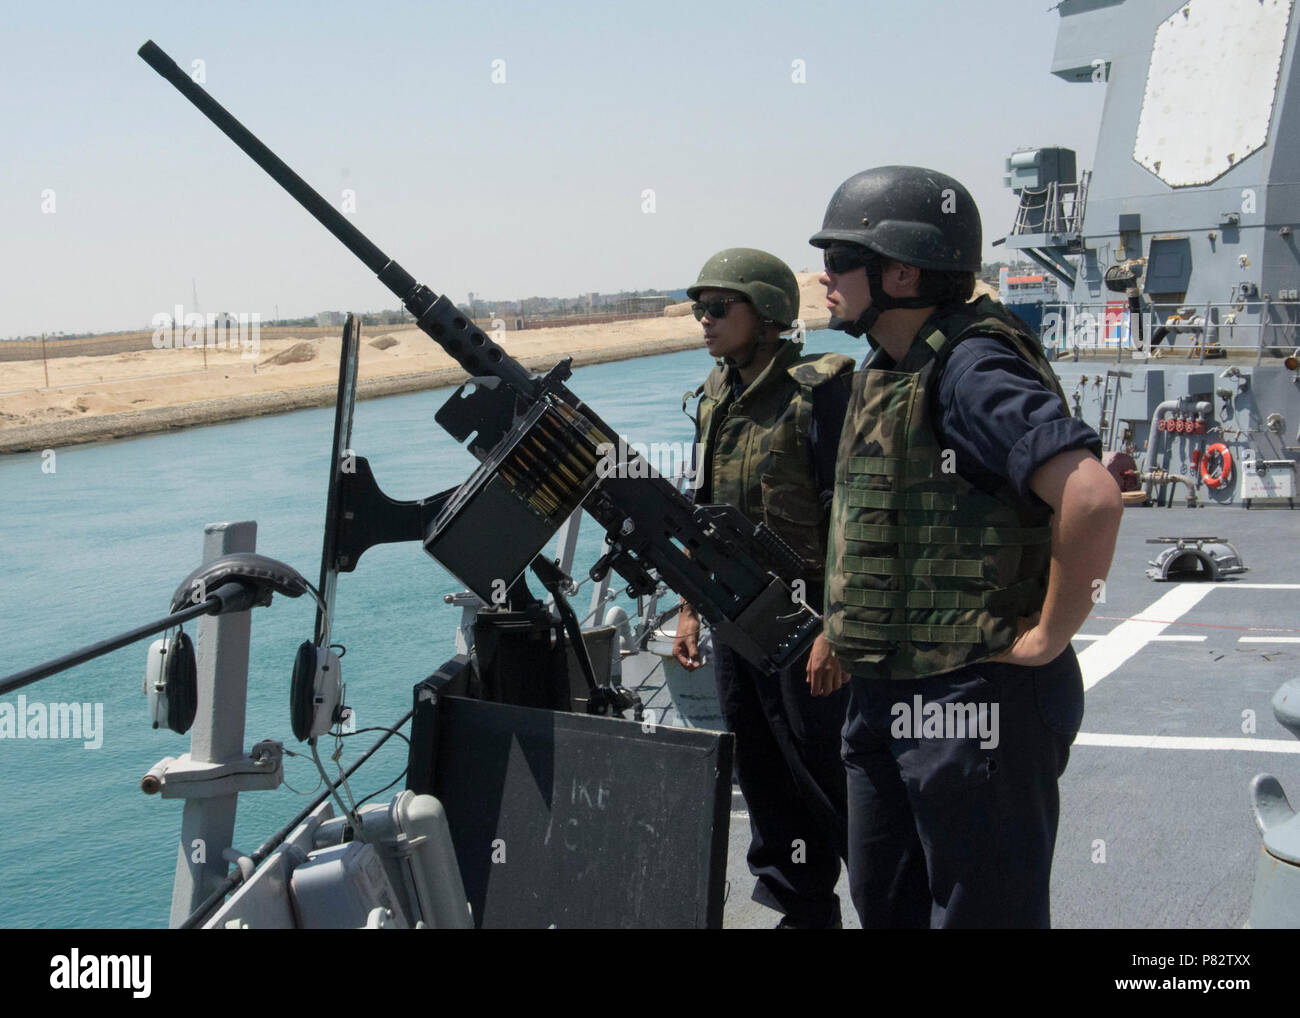 CANAL (June 29, 2016) Fire Controlman 2nd Class Ariana Friedrichs, right, and Information Systems Technician 3rd Class Phillip Aradanas man a .50-caliber machine gun while transiting the Suez Canal aboard the guided-missile destroyer USS Mason (DDG 87). Mason, deployed as part of the Eisenhower Carrier Strike Group, is supporting maritime security operations and theater security operations in the U.S. 5th Fleet area of operations. Stock Photo